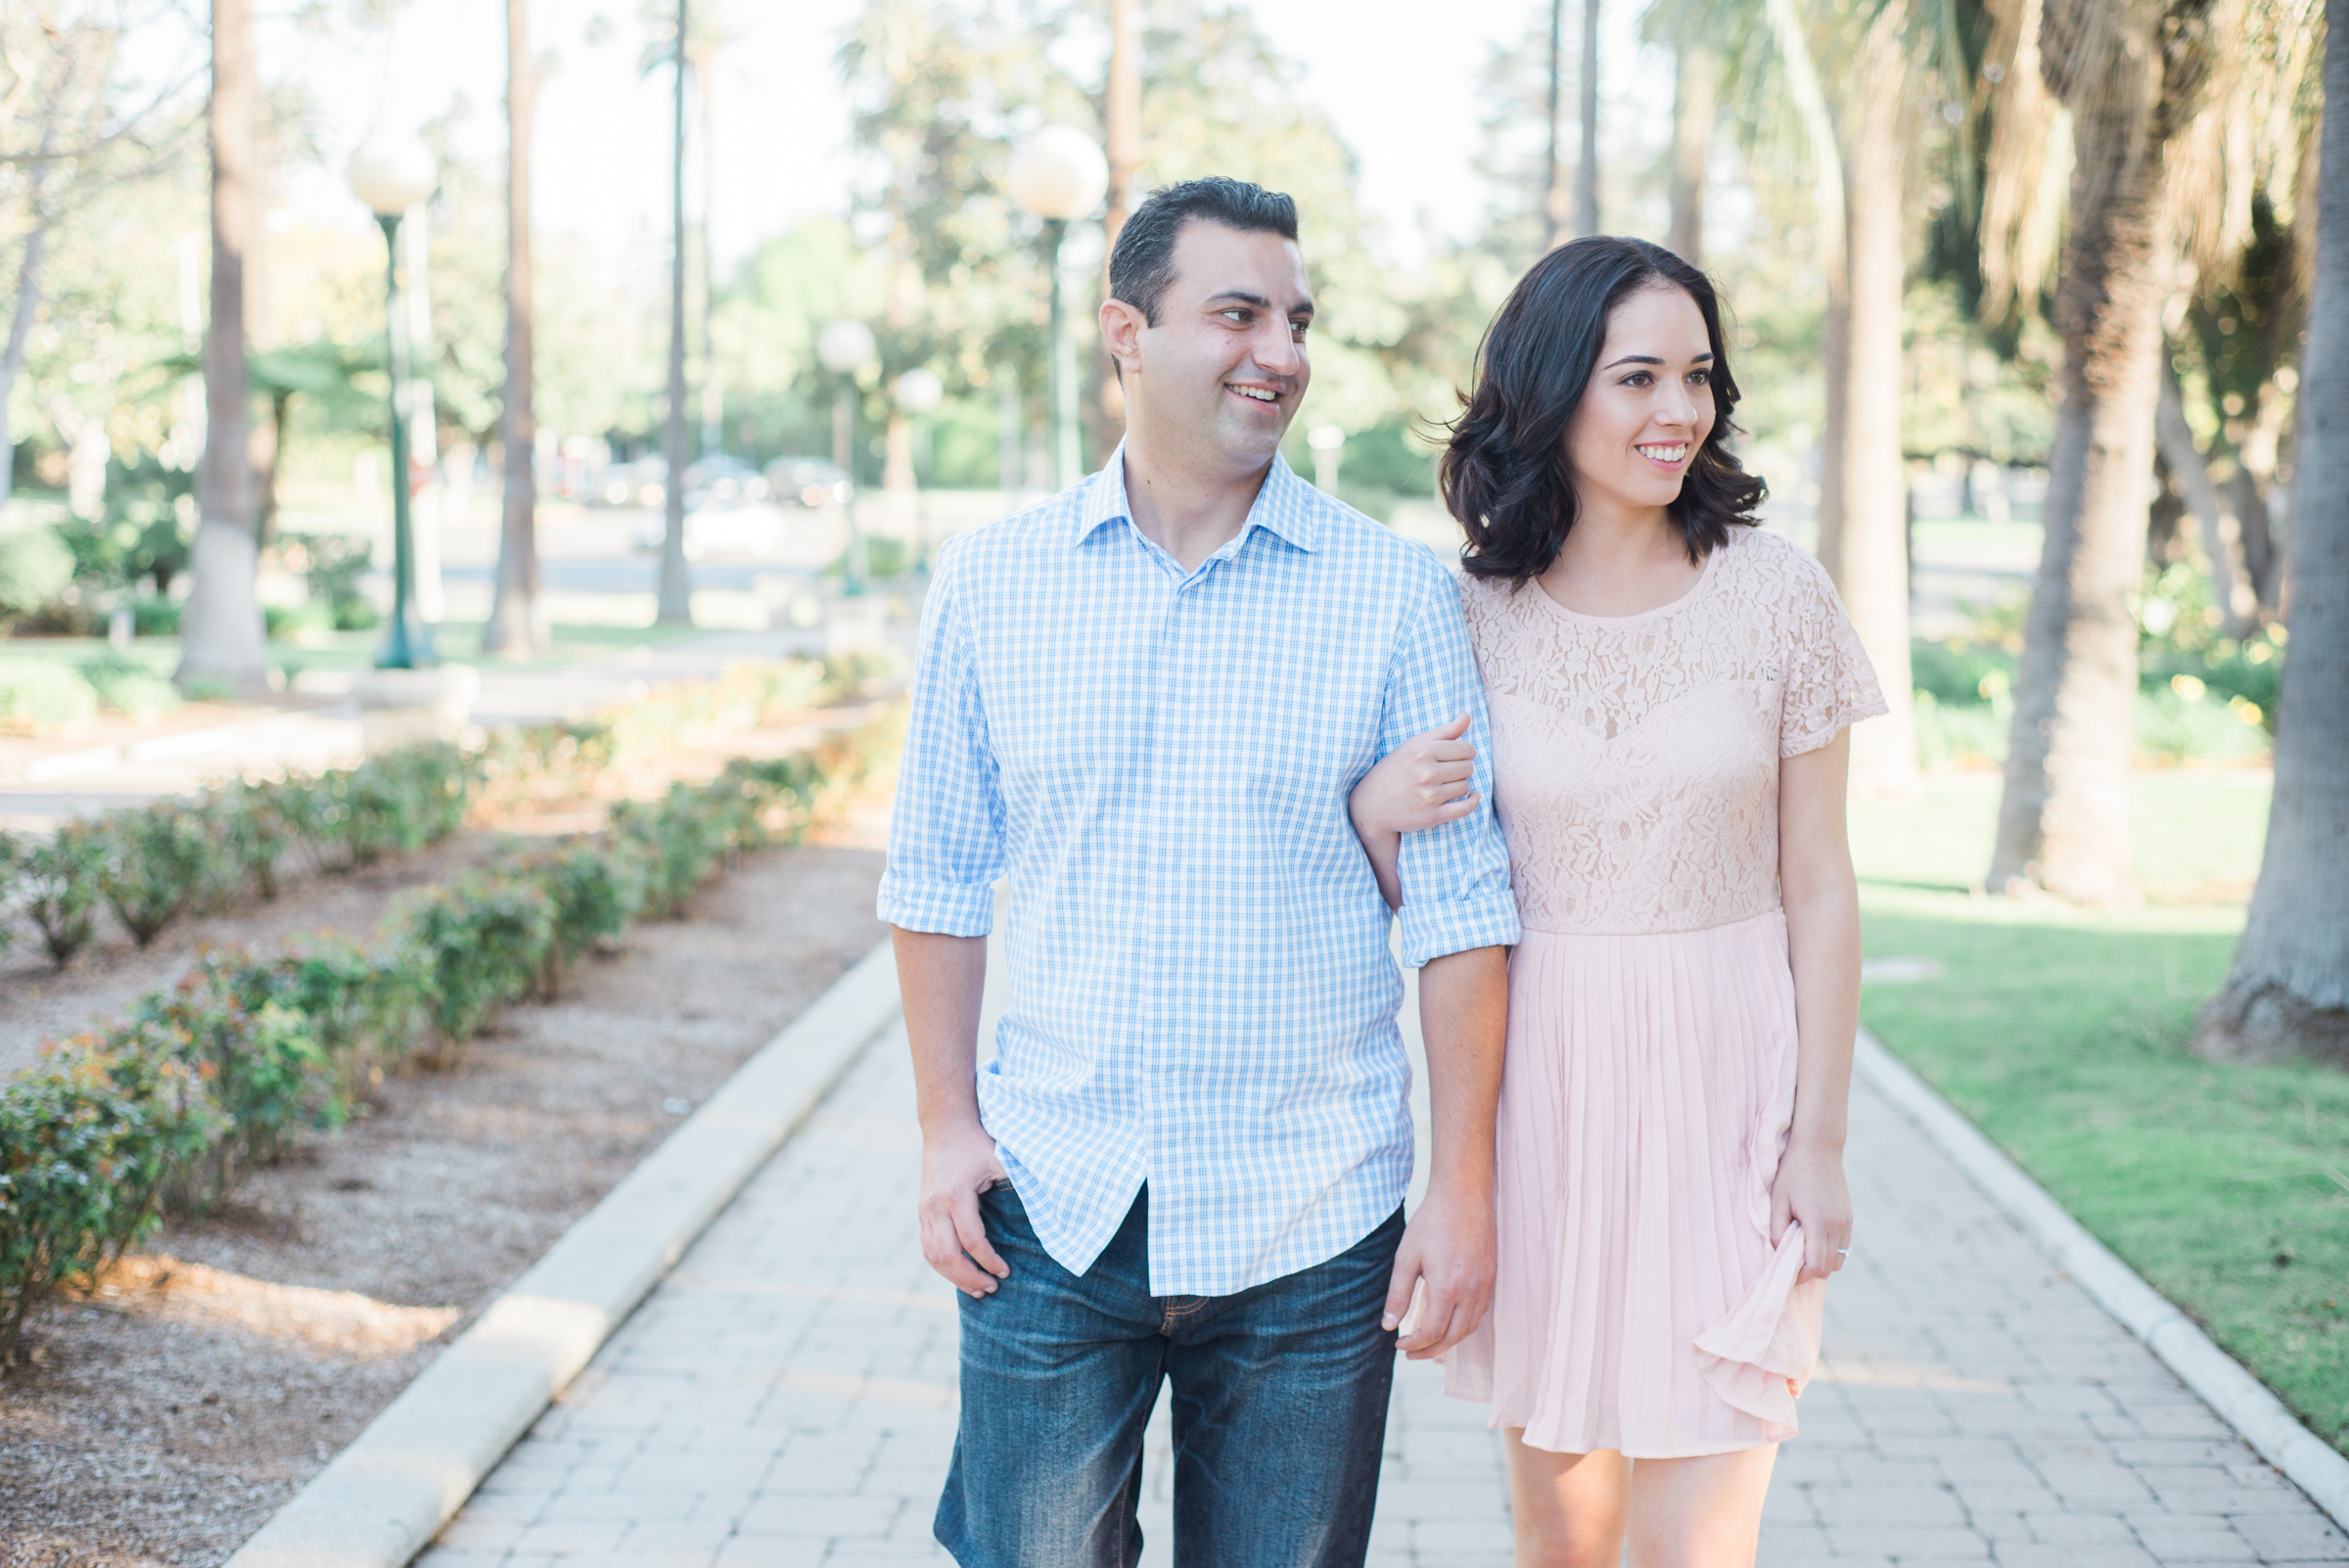 los_angeles_engagement_session_photography_Will_Rogers_Memorial_Park-2.jpg